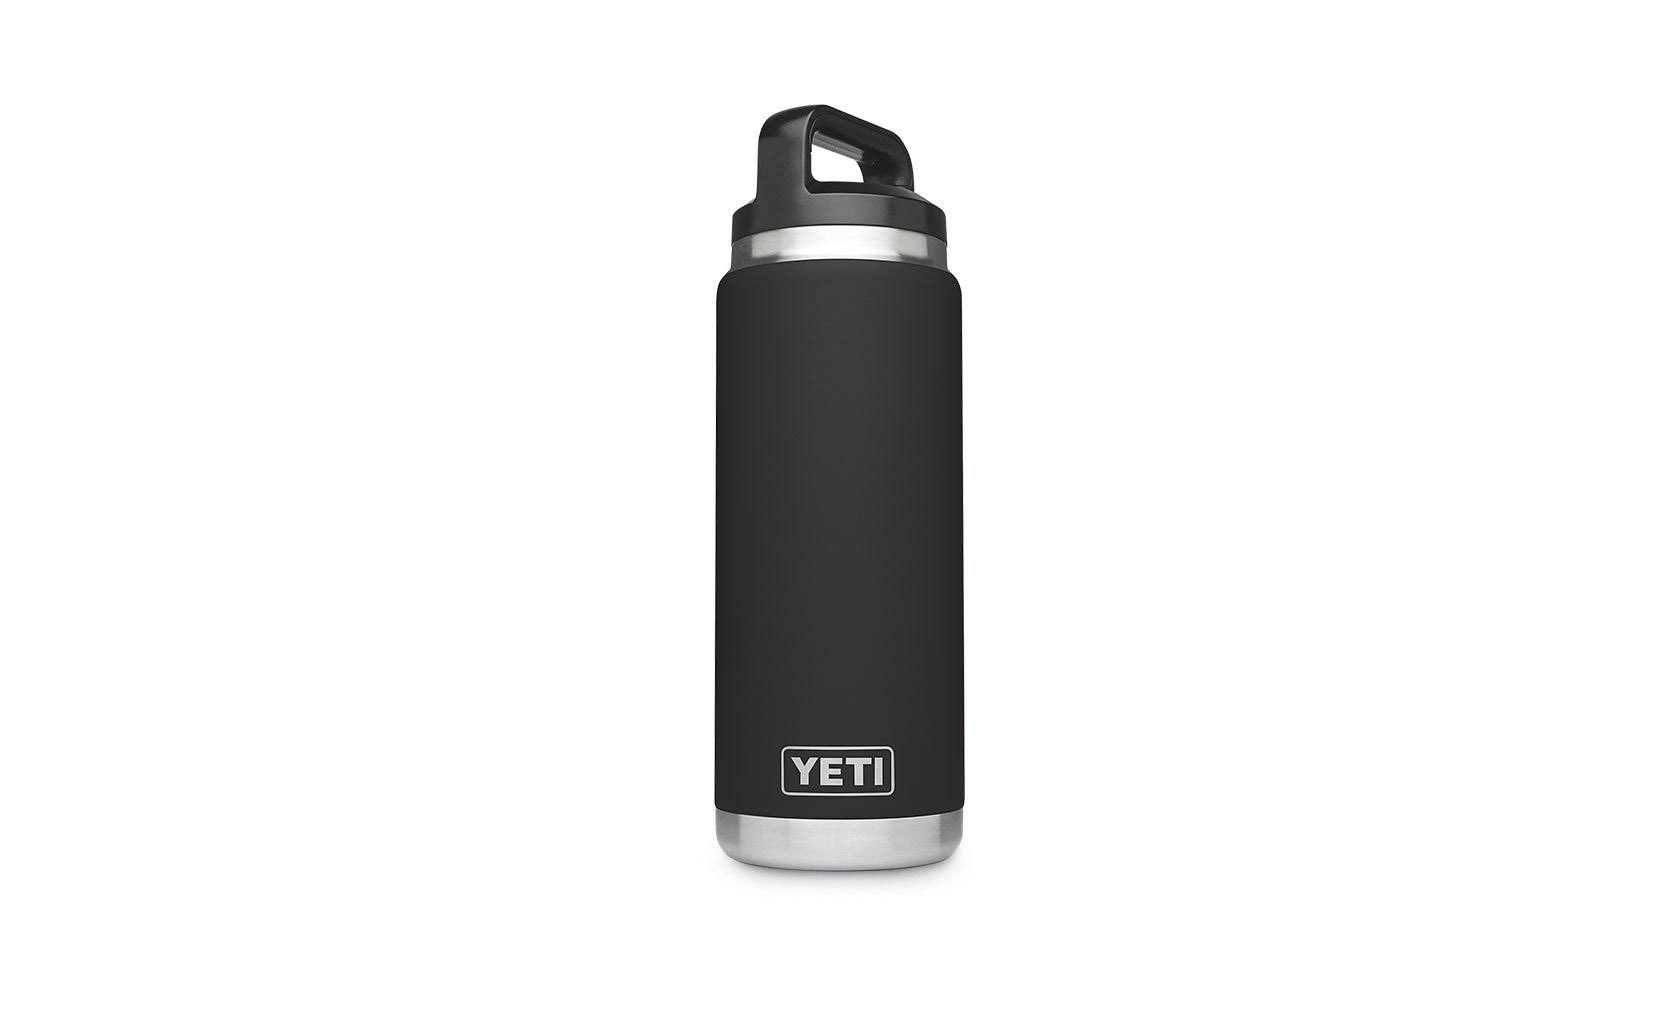 Yeti Rambler Vacuum Insulated Stainless Steel Bottle - with Cap, Black, 26oz